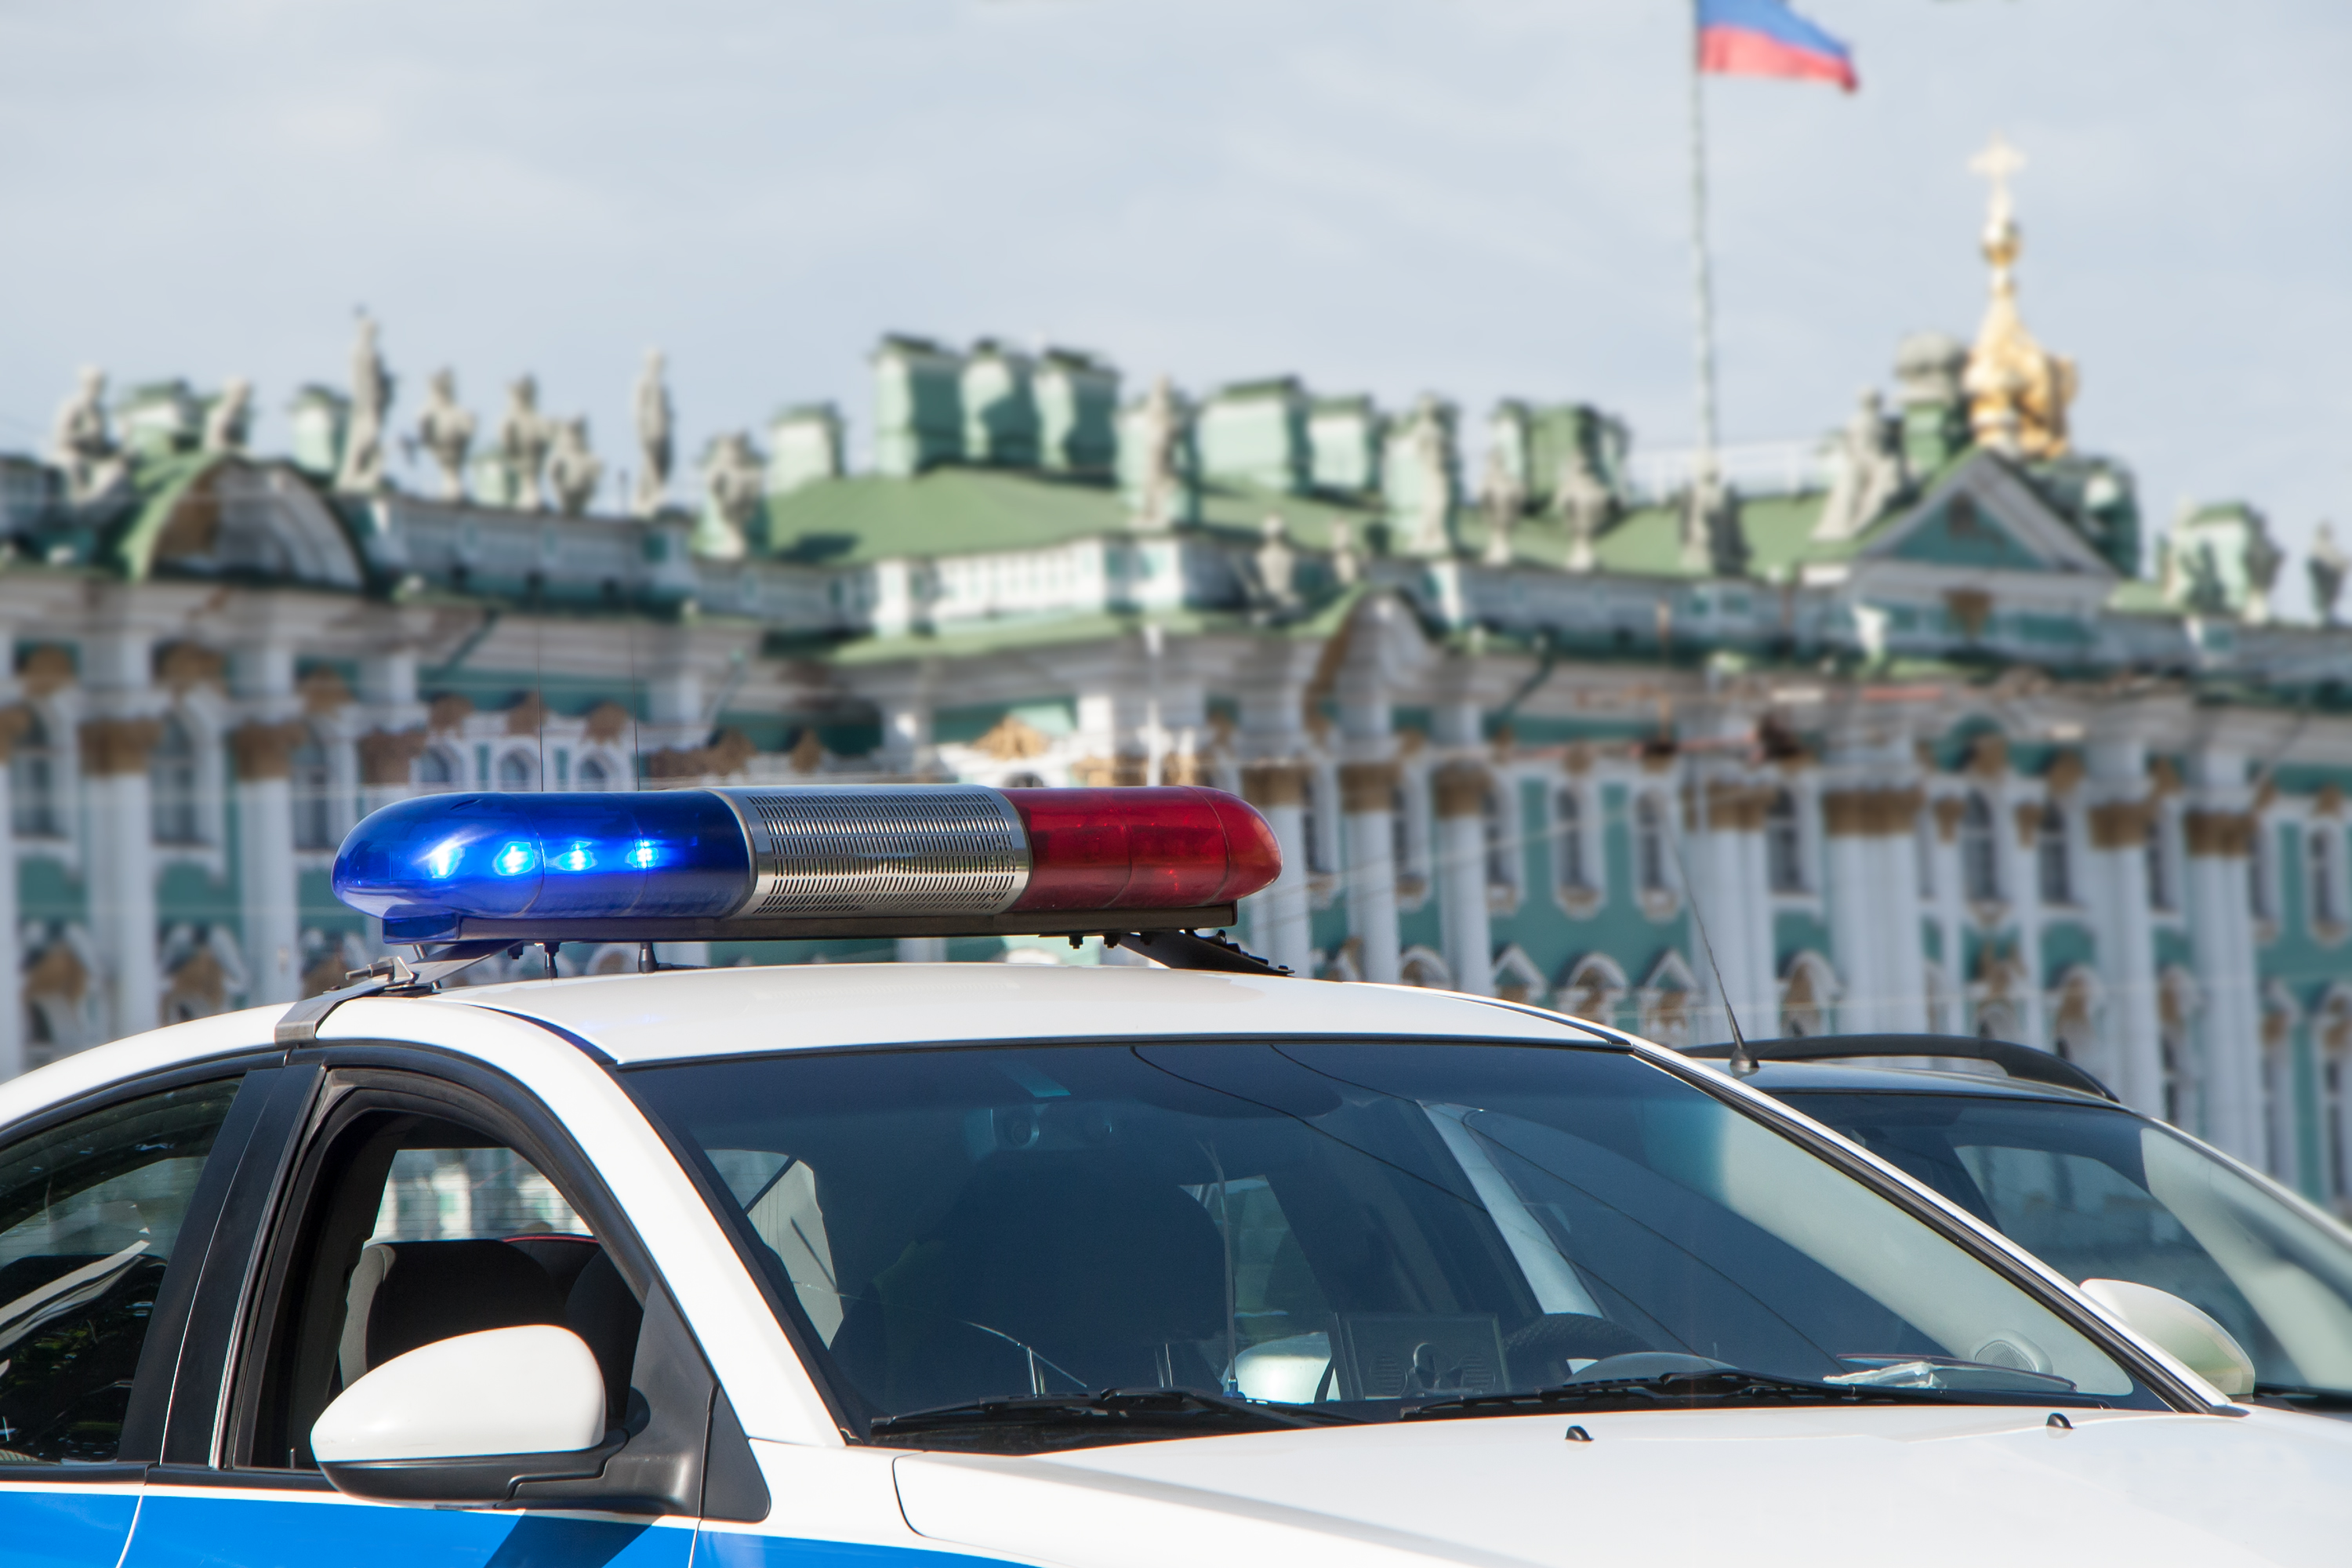 Police cars in front of the State Hermitage Museum in St. Petersburg, Russia.